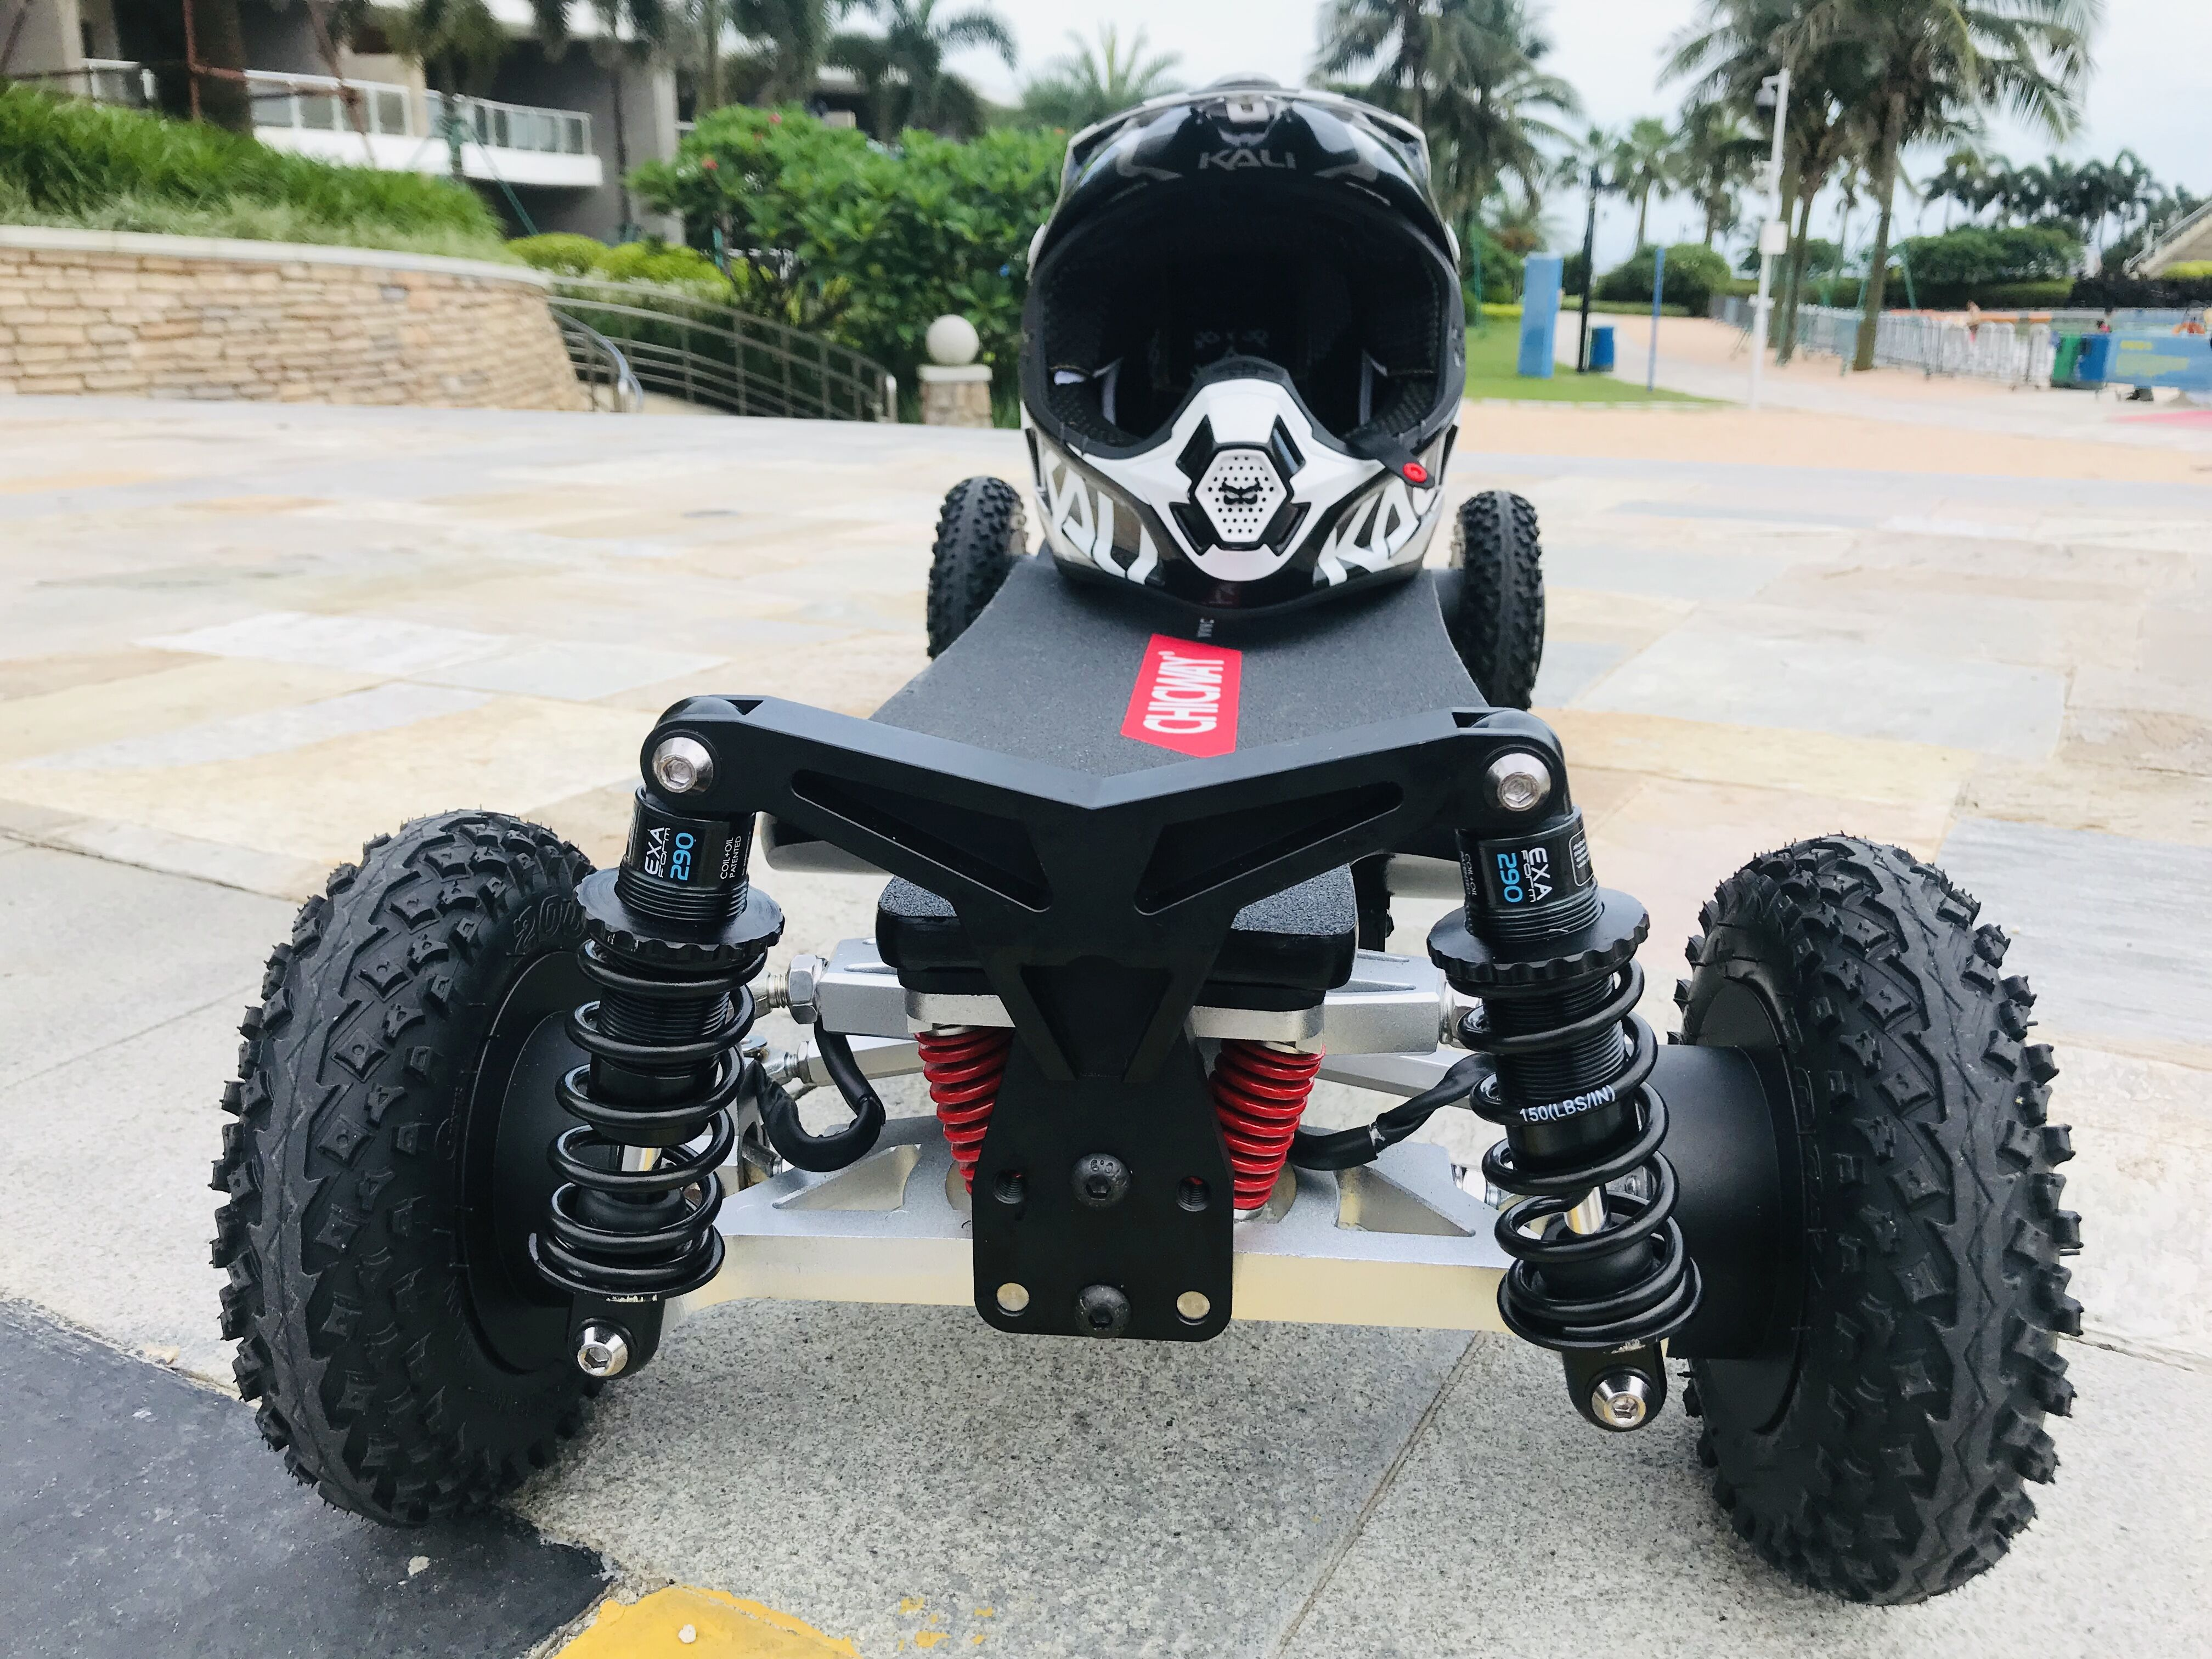 Electric Skateboard CHICWAY Four-wheel High-performance Off-road Electric Scooter,four-wheel Drive 4*800, 3200W,45km/h,Bajaboard